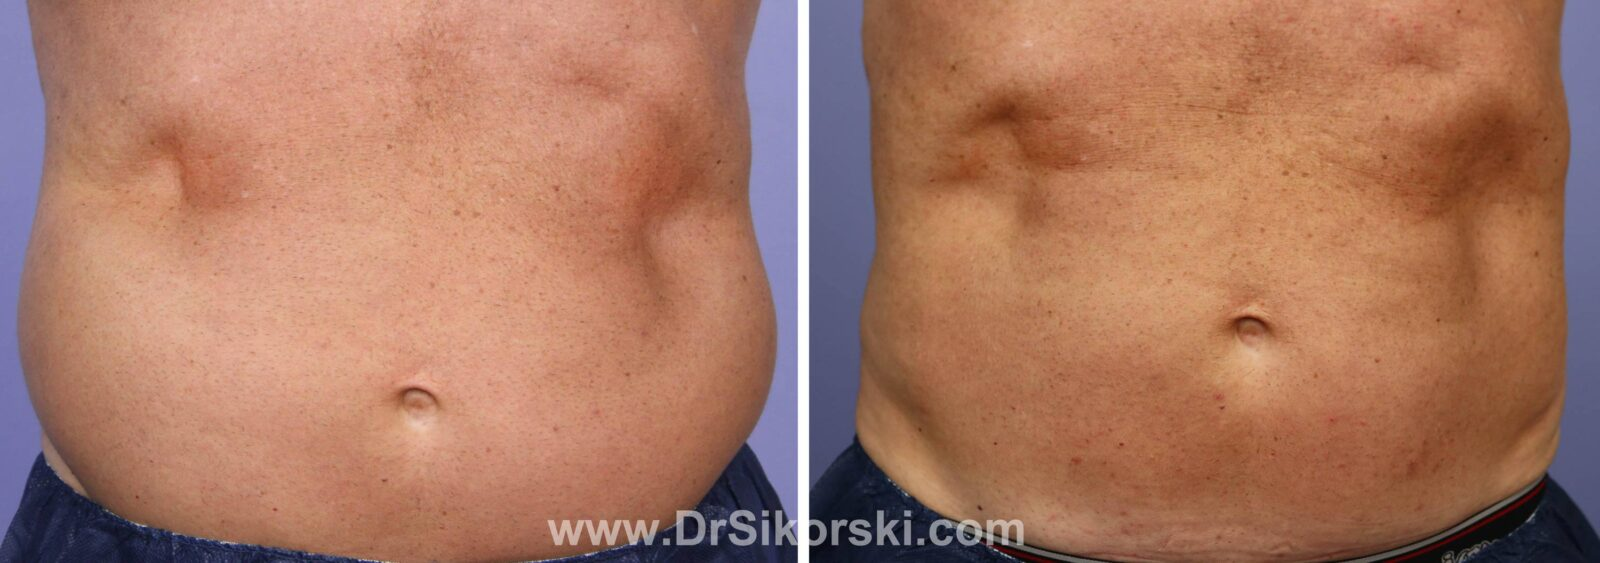 CoolSculpting Mission Viejo Before and After Patient H1